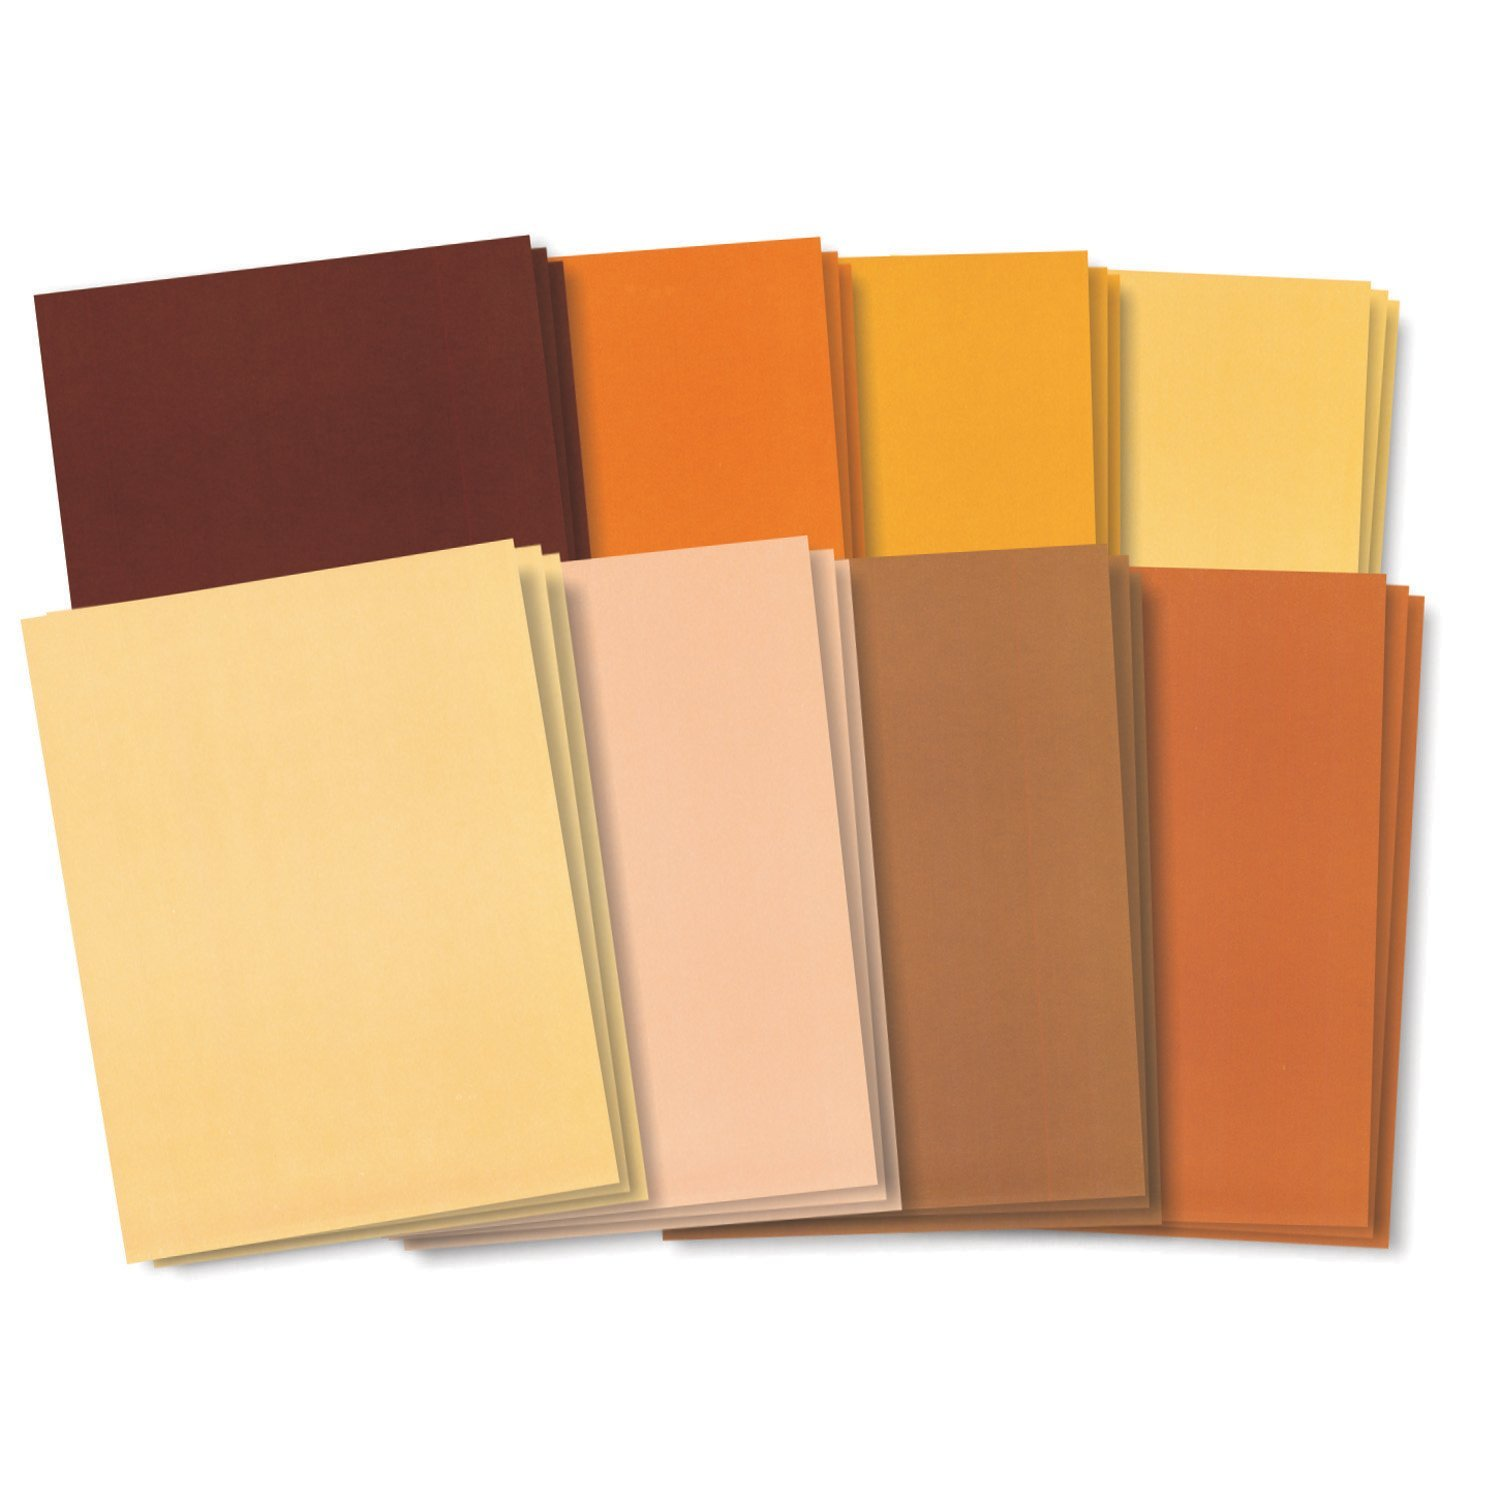 Skin Tone Designs Paper, Eight Flesh tones for self-portraits, puppets and paper dolls By Roylco Ship from US